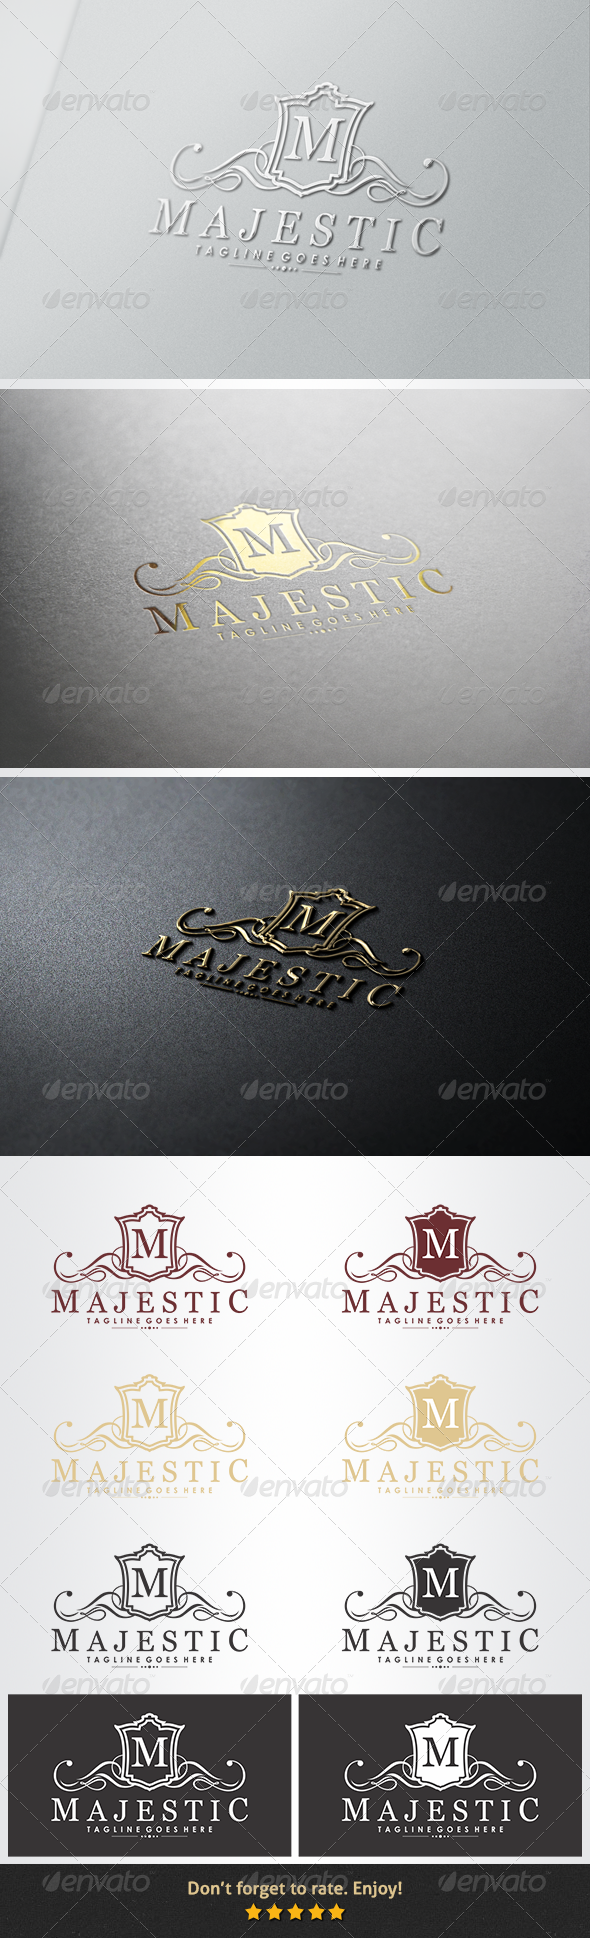 Majestic Logo - Crests Logo Templates